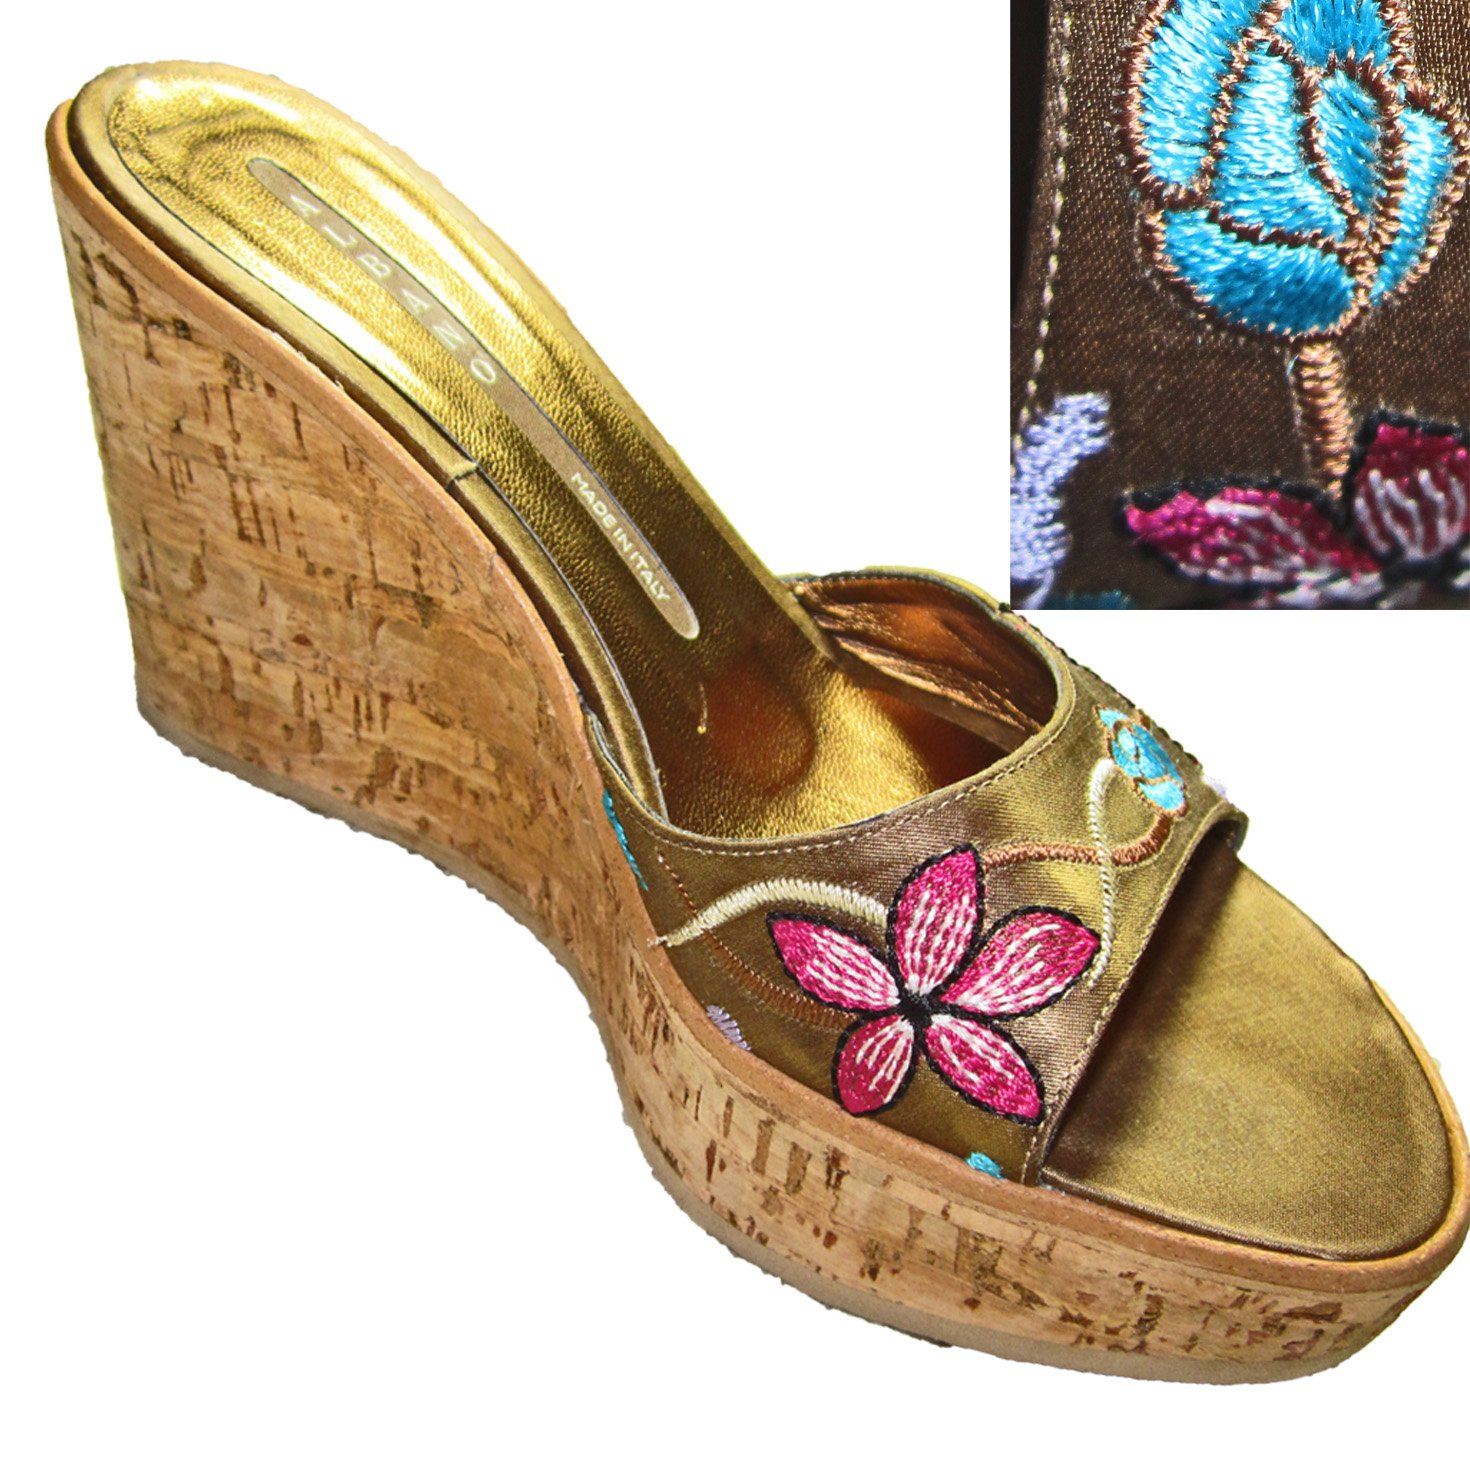 ALBANO Italian Cork Sole WEDGE PLATFORM Slide Shoes Embroidered 5.5